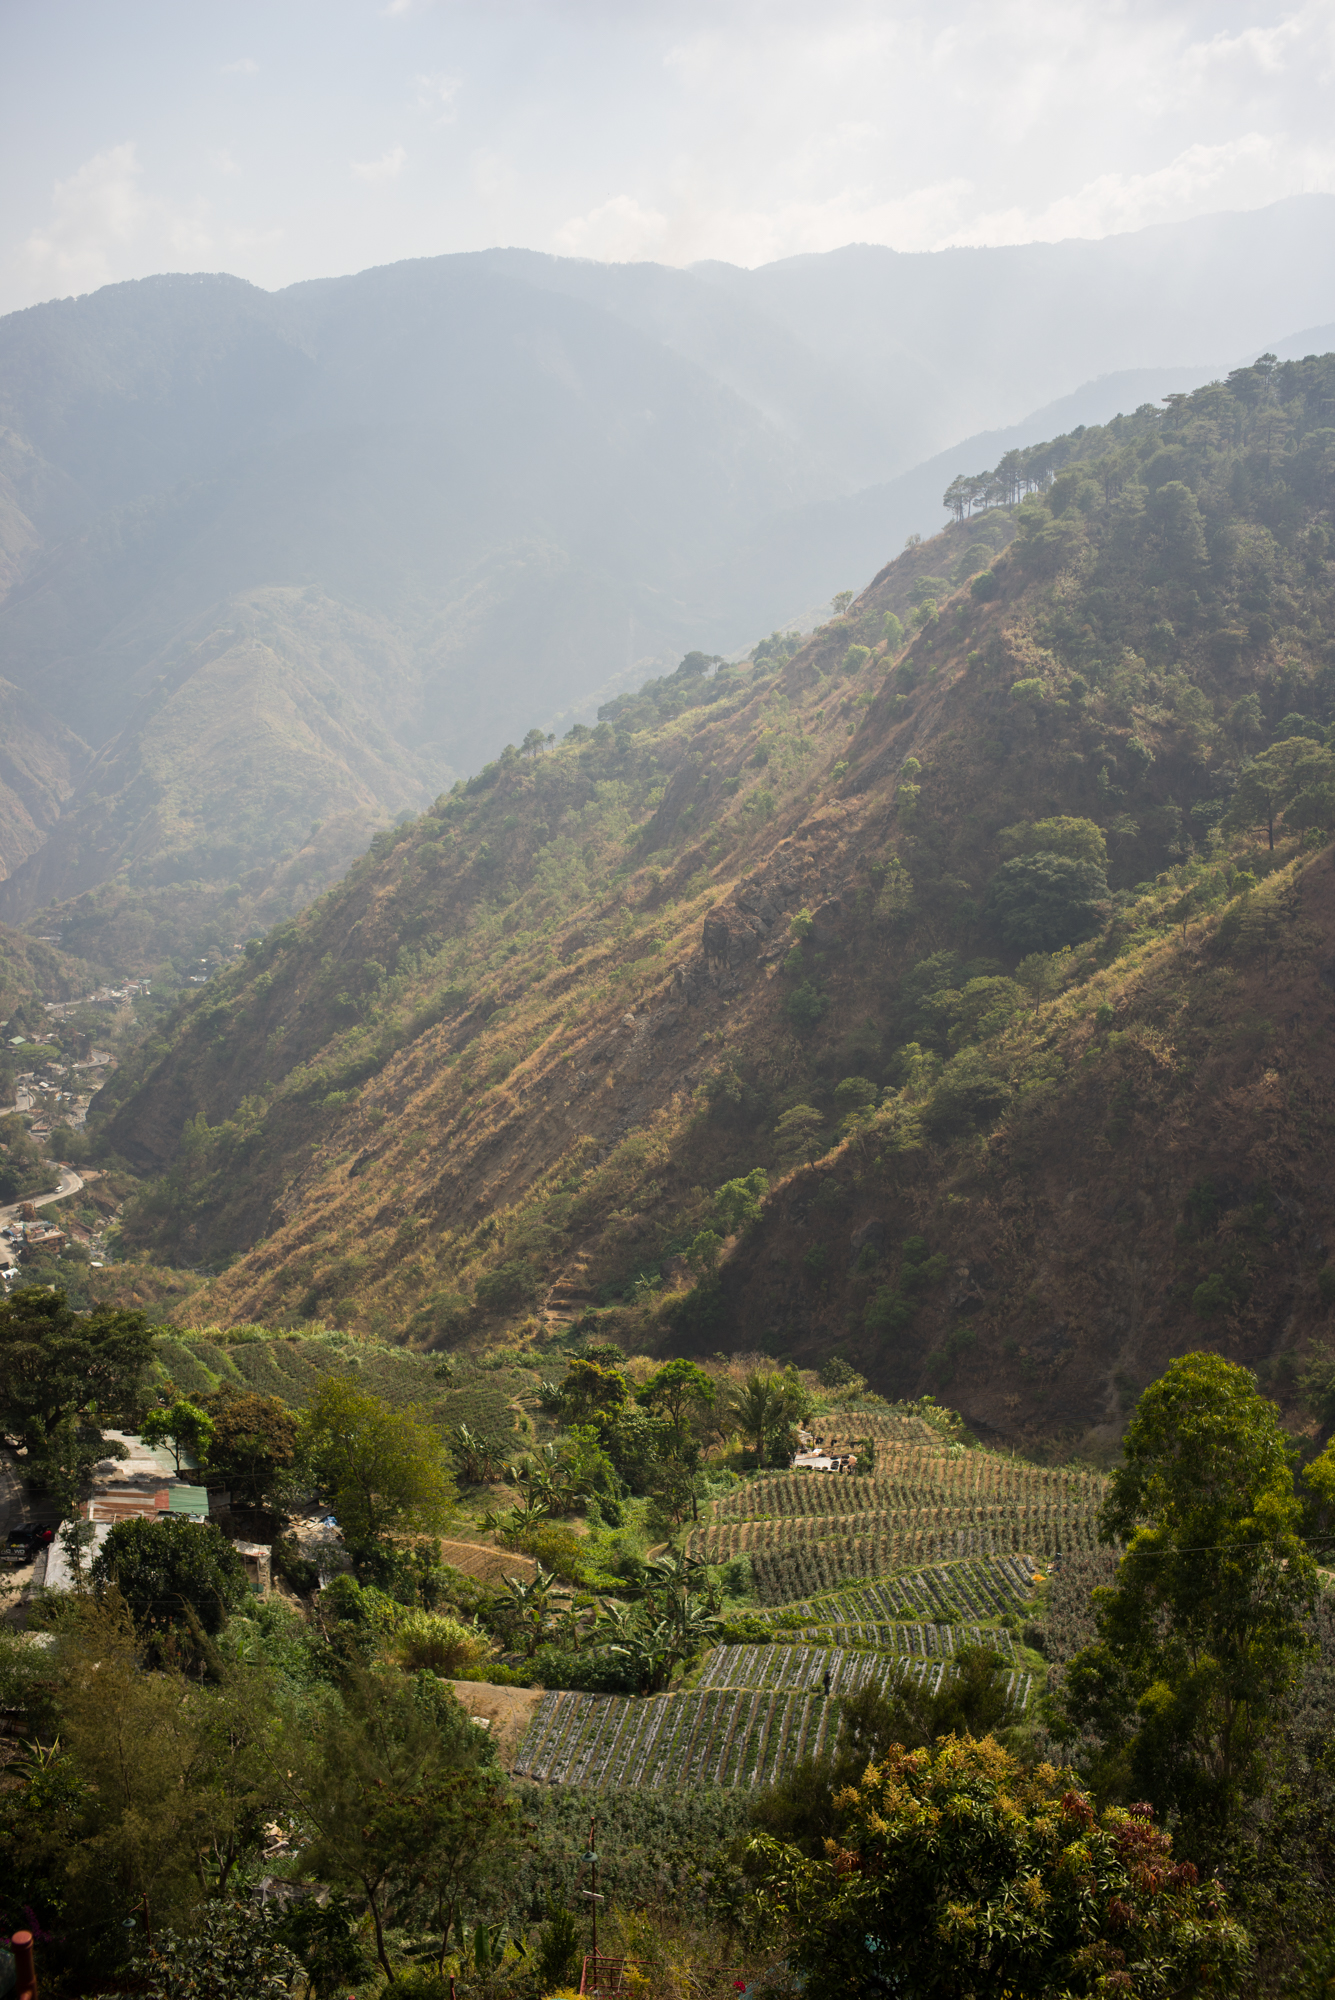 Valley and mountains near Baguio, Phillipines